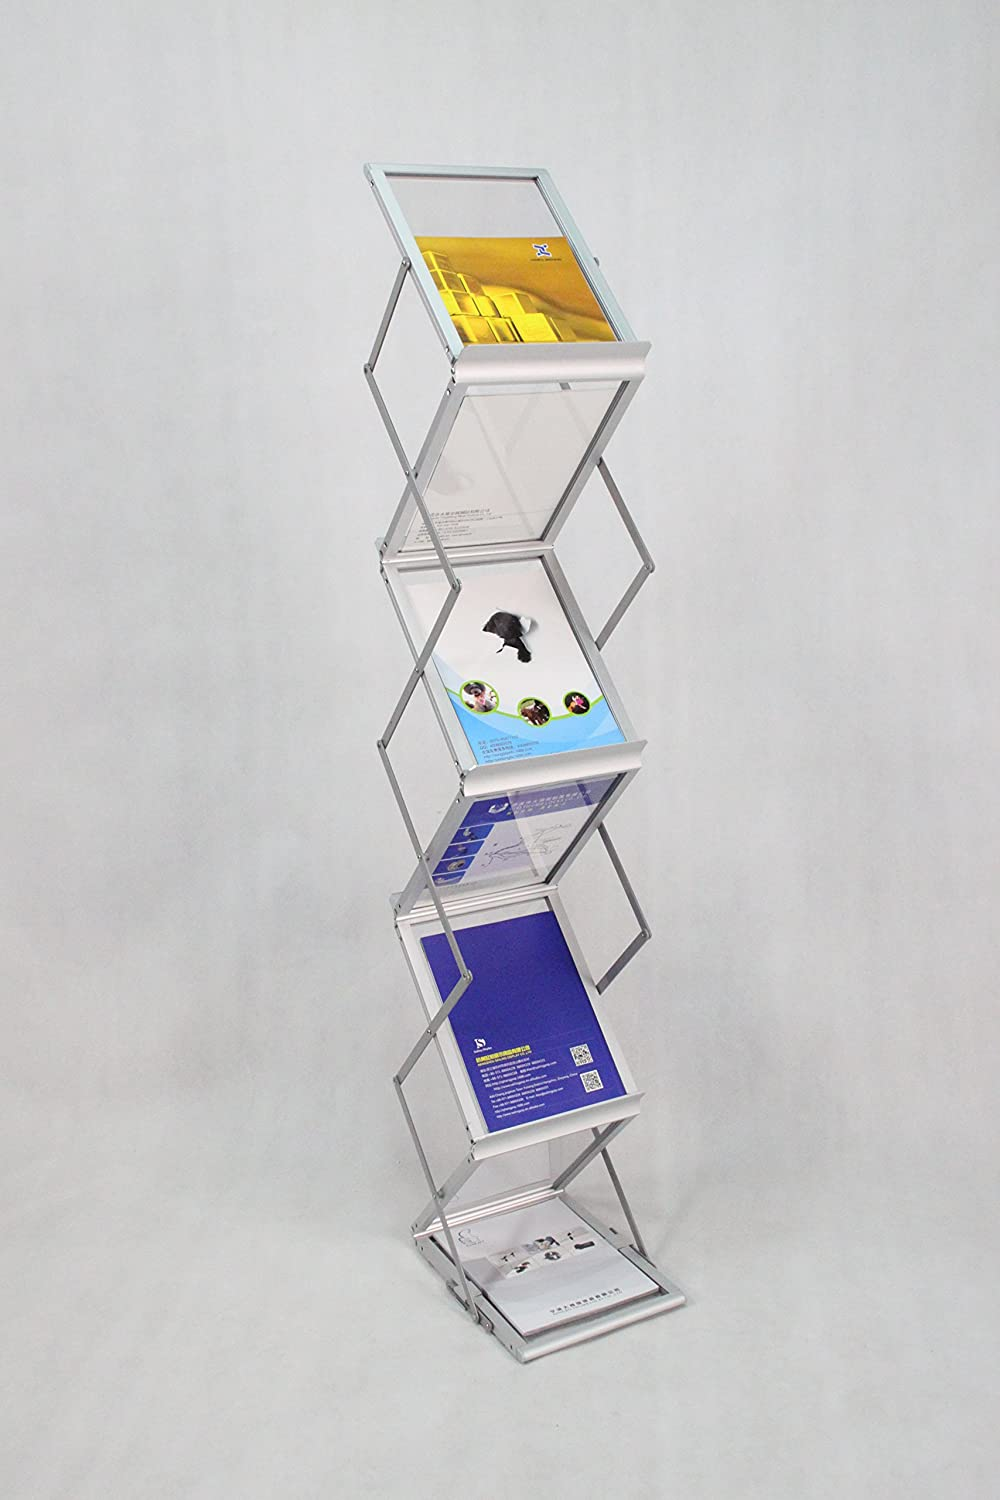 FixtureDisplays 6-Pocket Portable Literature Stand with Case, 2-Sided Silver 120033!